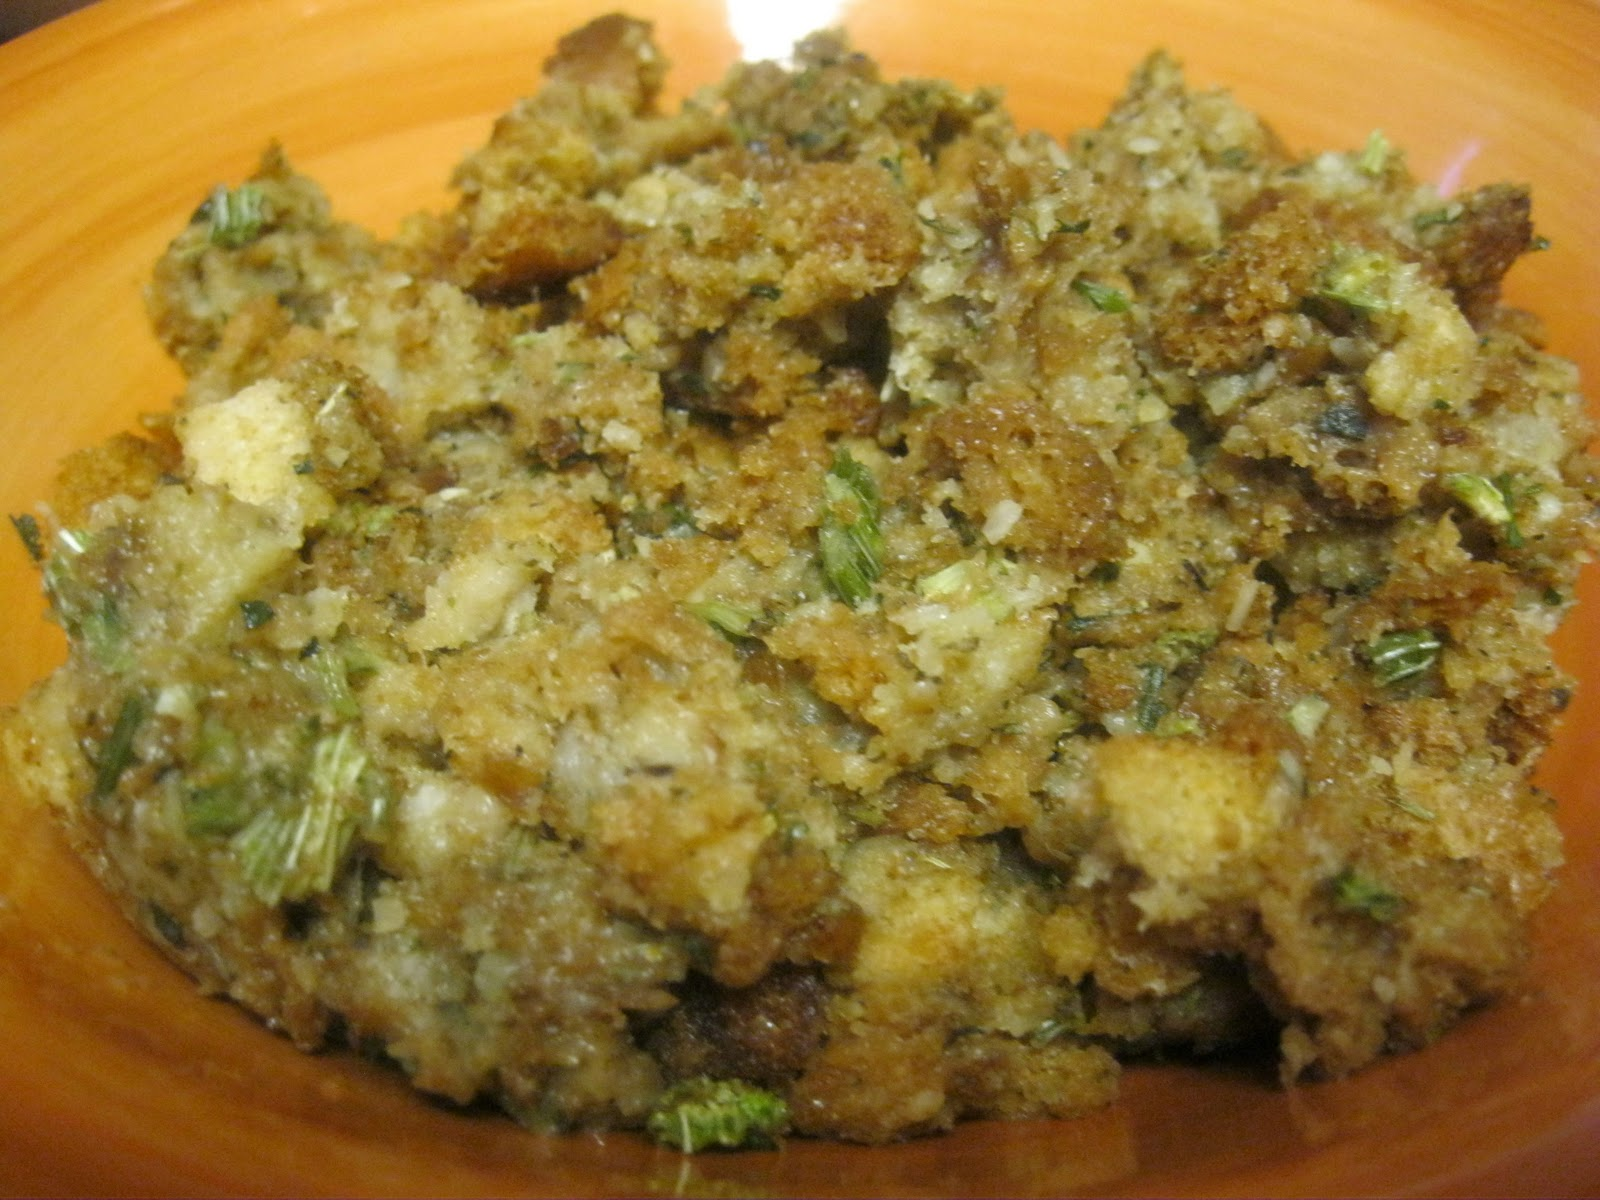 TIP GARDEN: Master Mix: Stove Top Stuffing From Leftover Bread